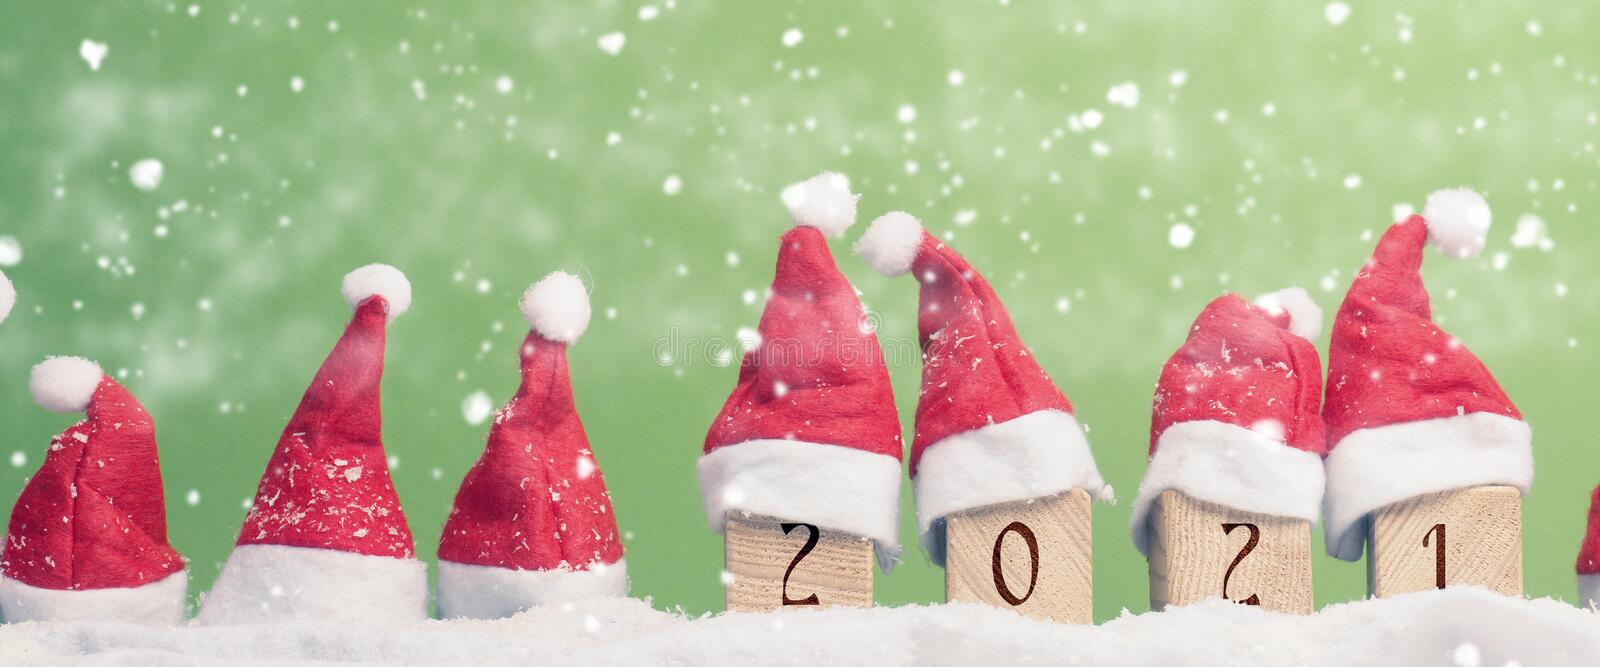 Many hats of Santa in a row with snow royalty free stock photo